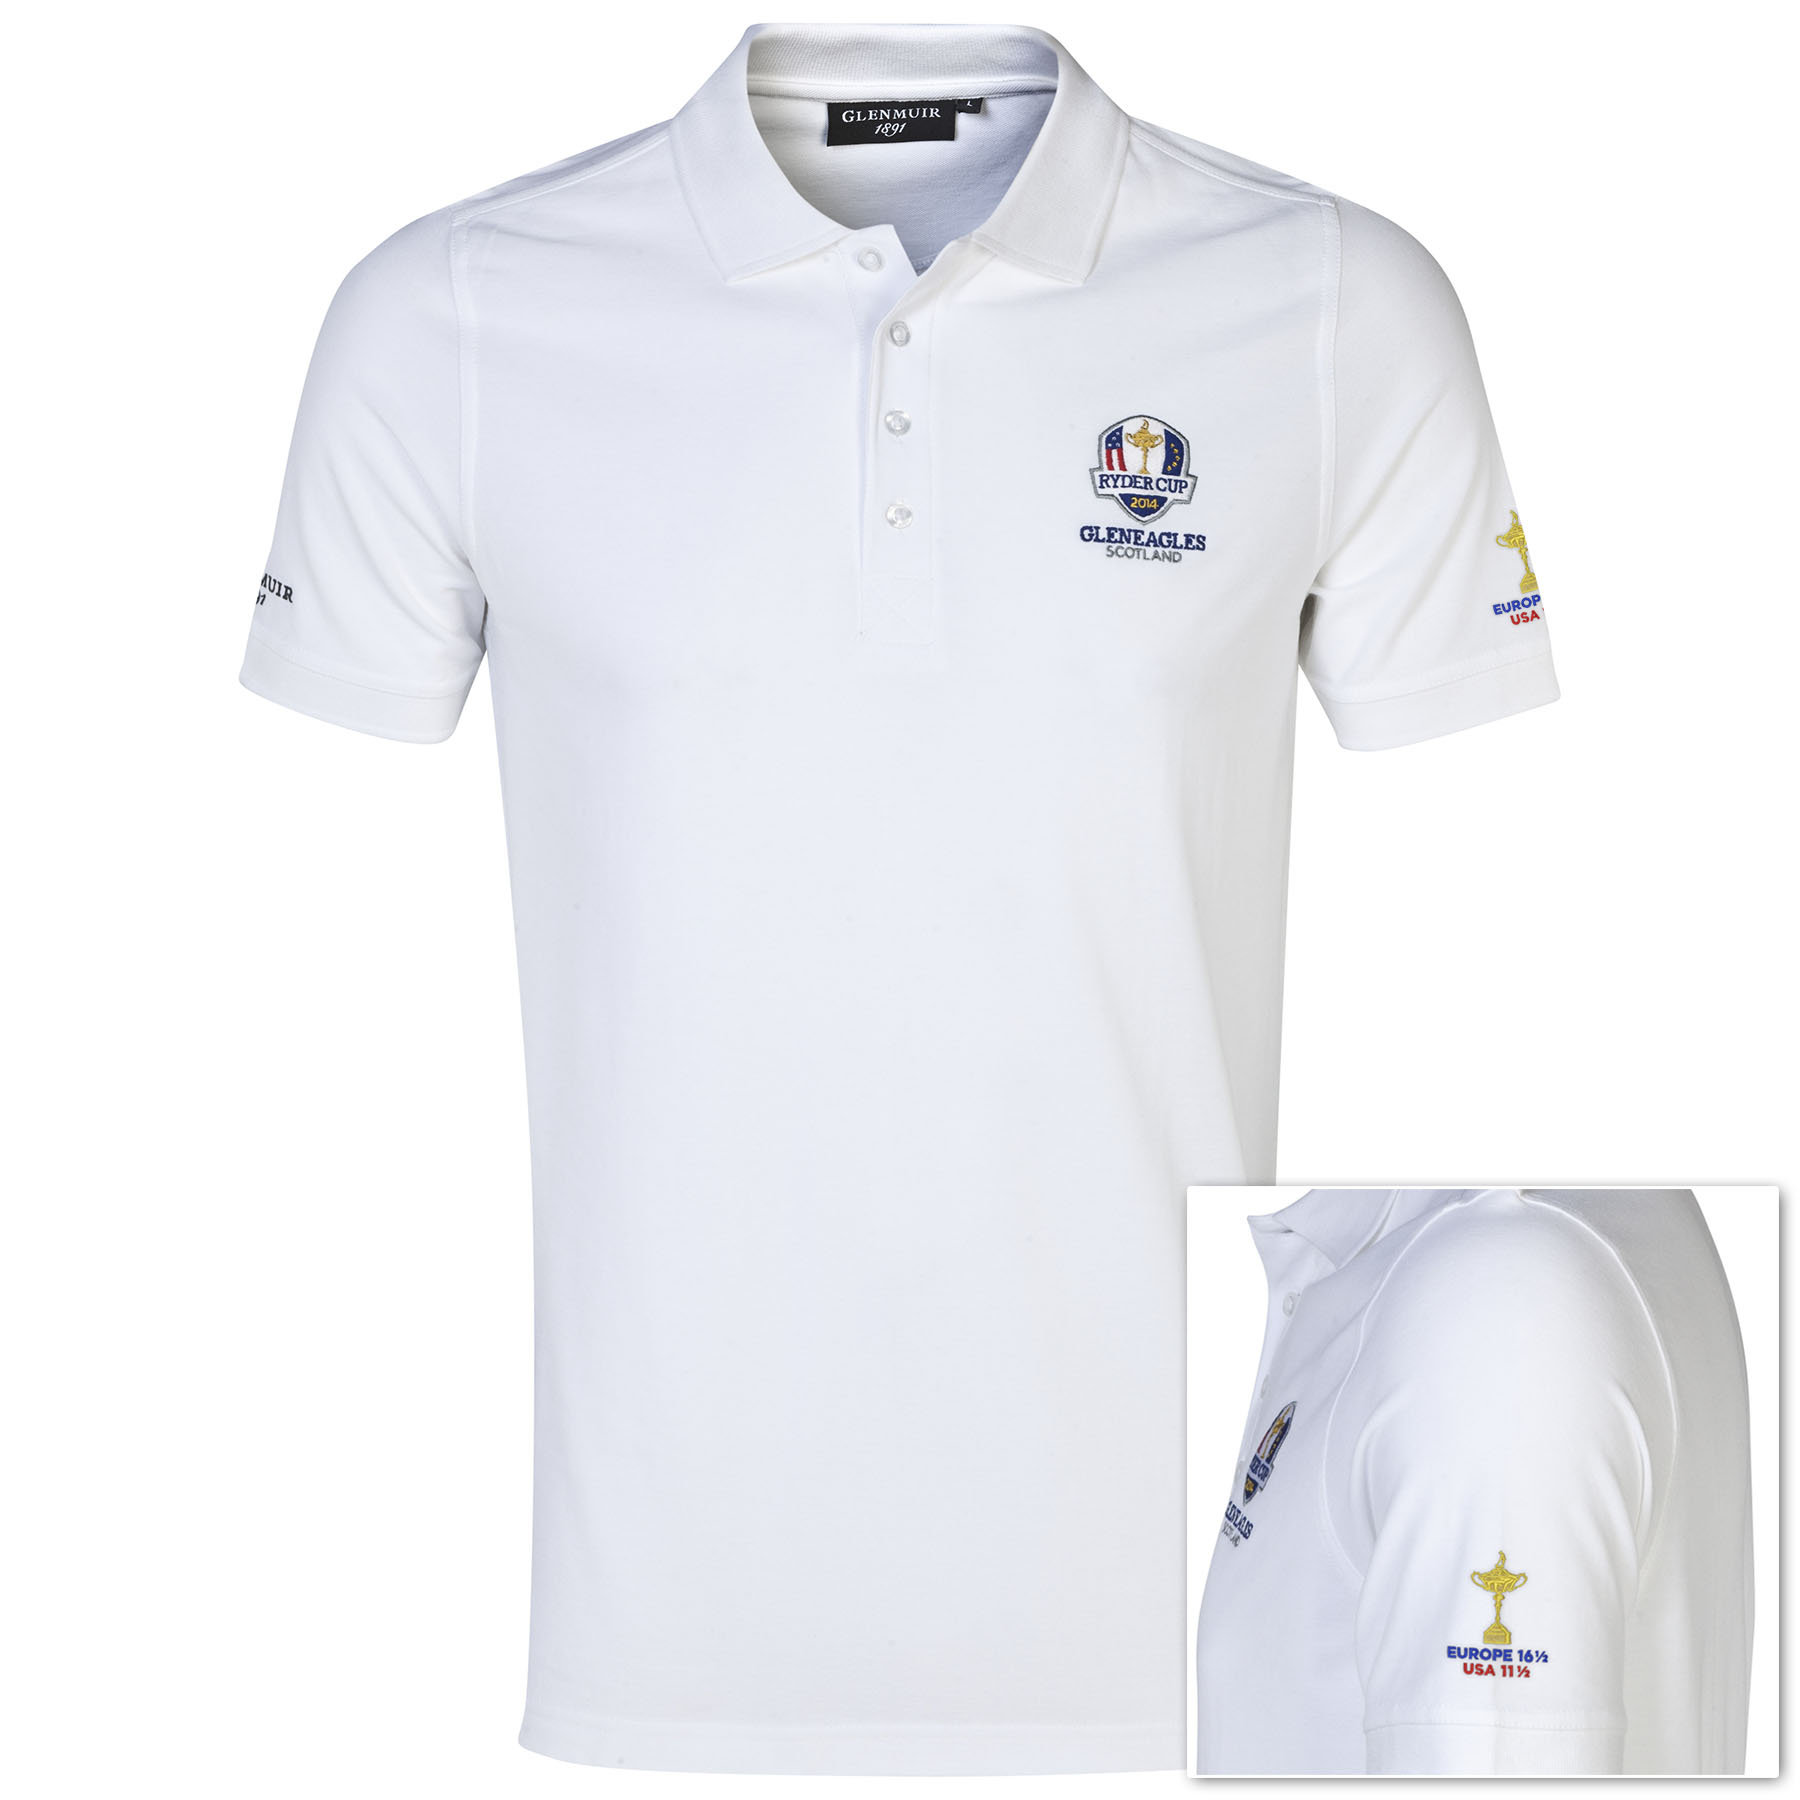 The 2014 Ryder Cup Glenmuir Winners Polo - White